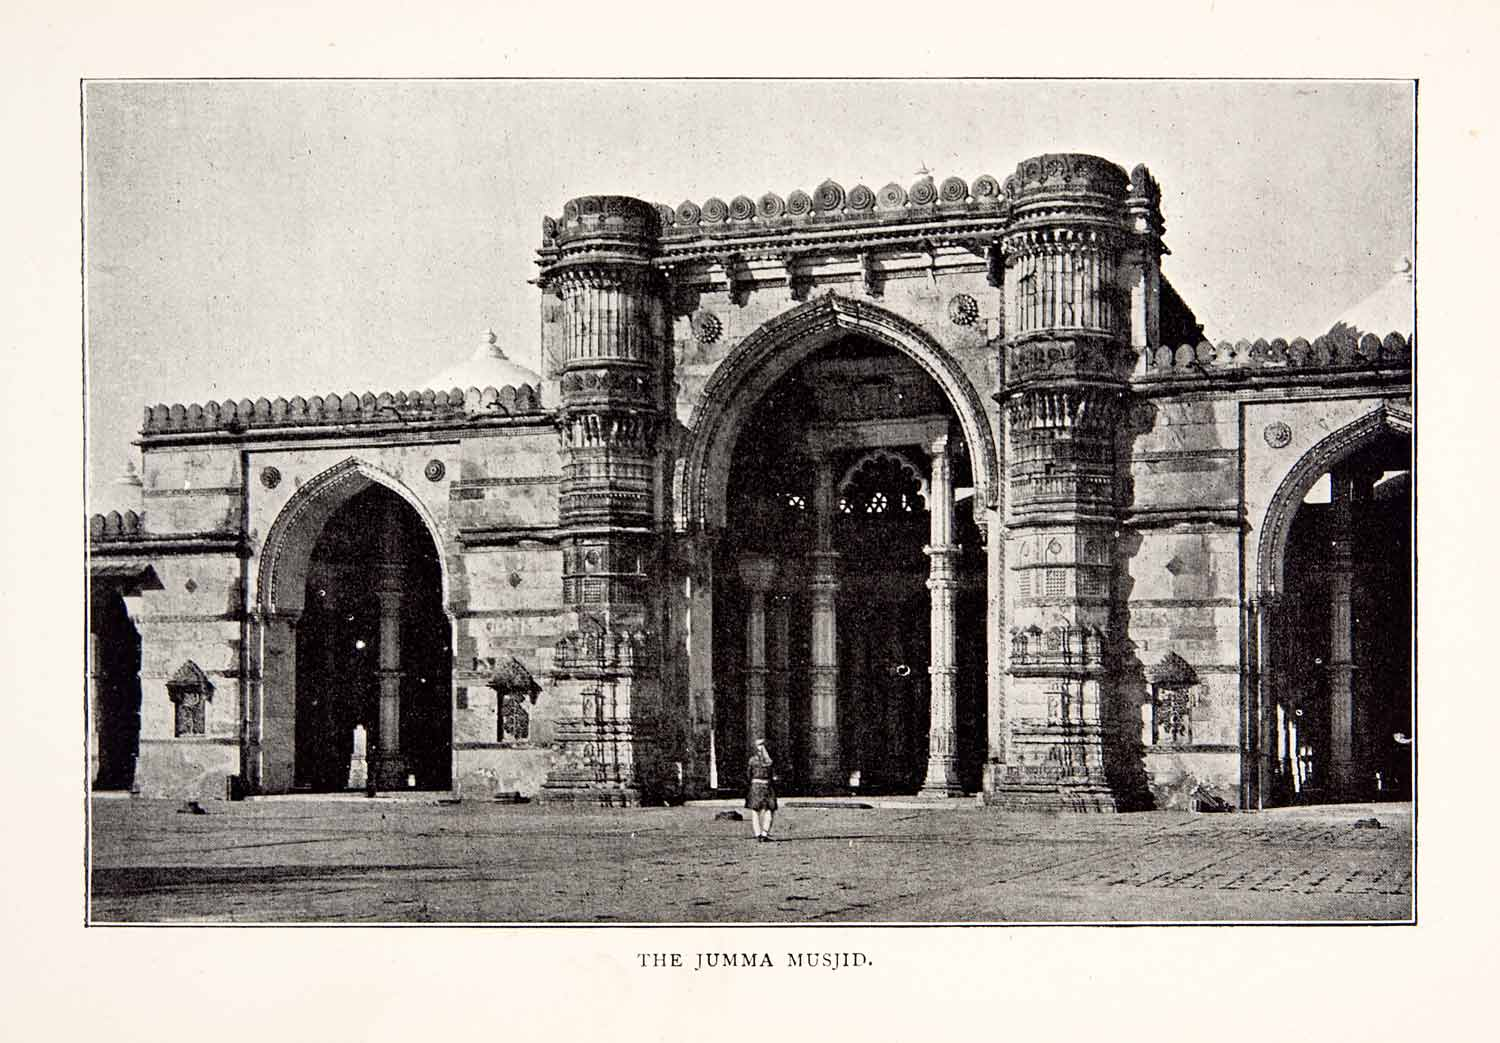 1903 Print 16th Century Jama Masjid Mosque Delhi India Historic Image XGHB2